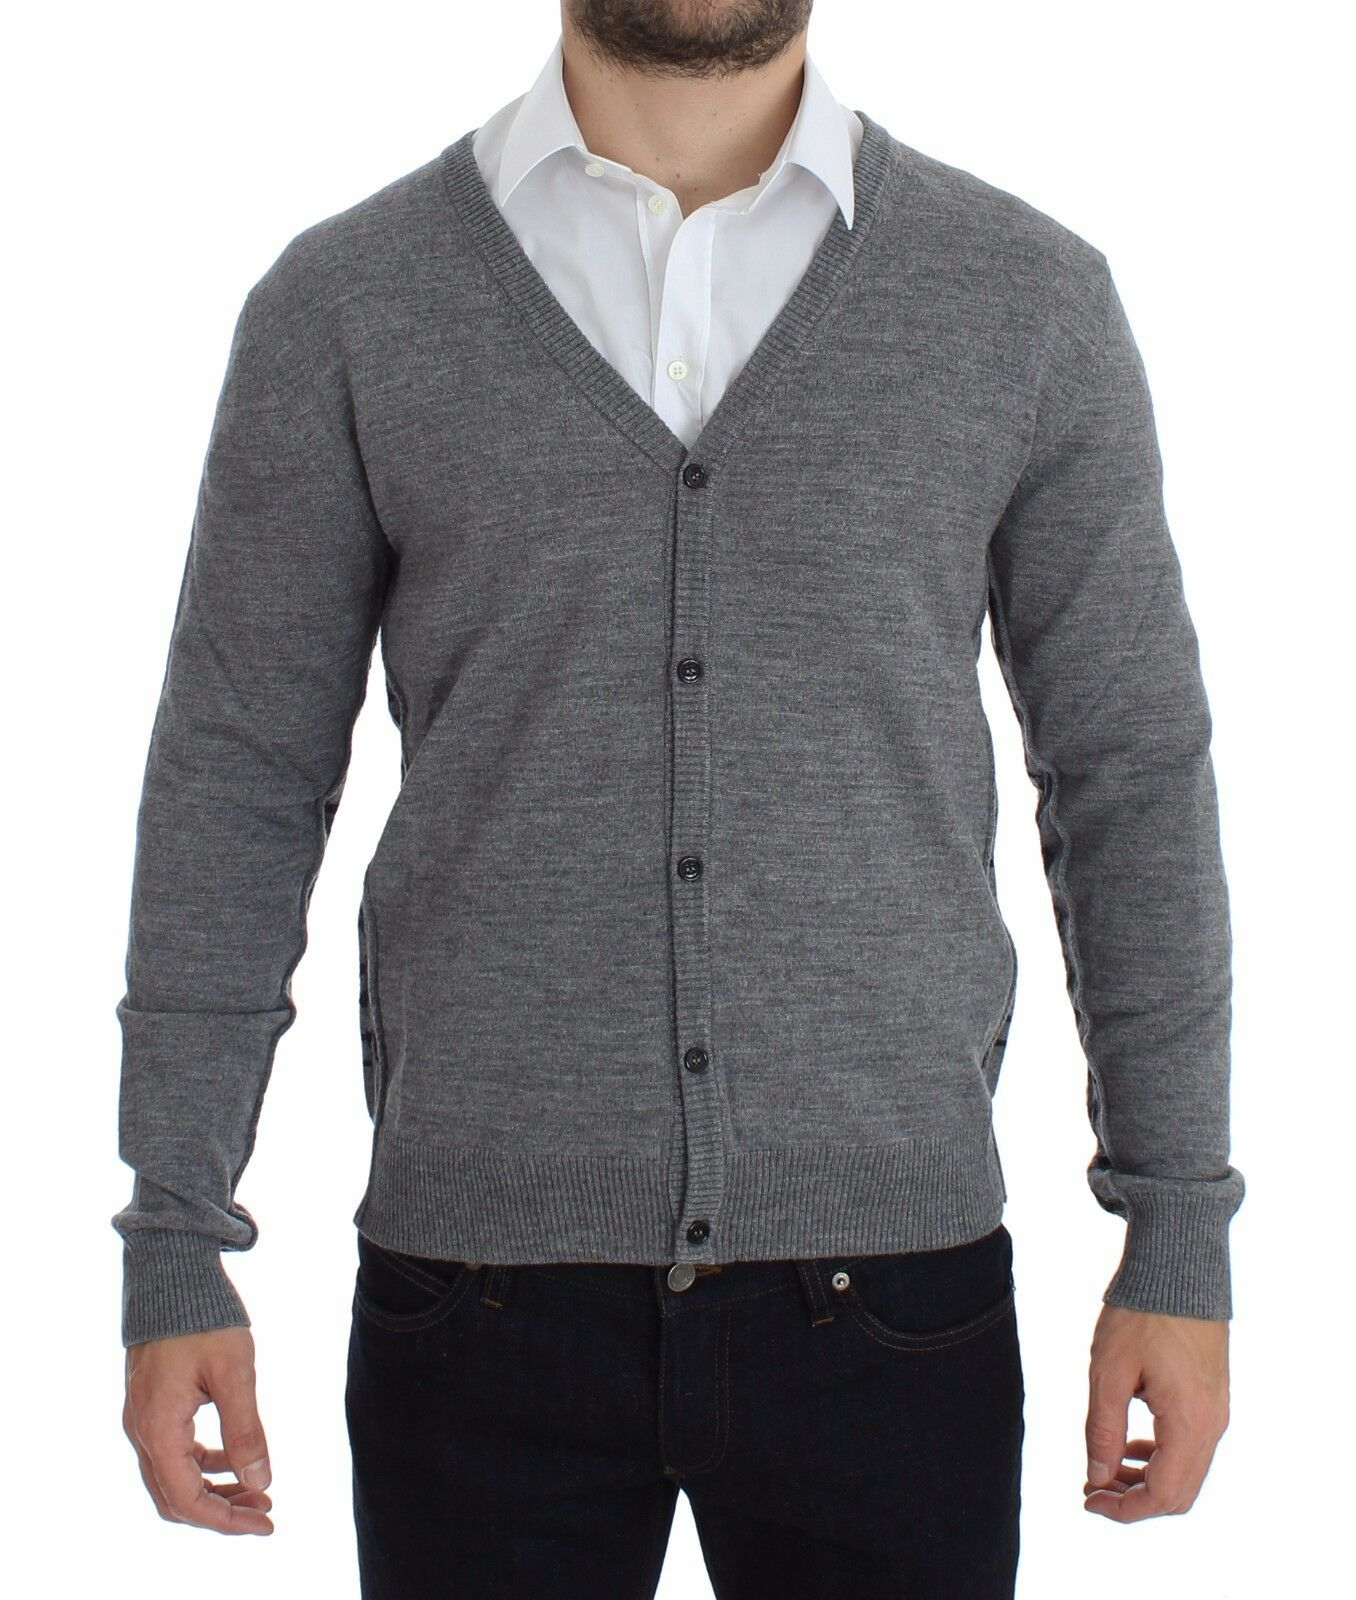 NEW 360 GALLIANO grau Wool Button Down Logo Cardigan Sweater Pullover Top s. XL